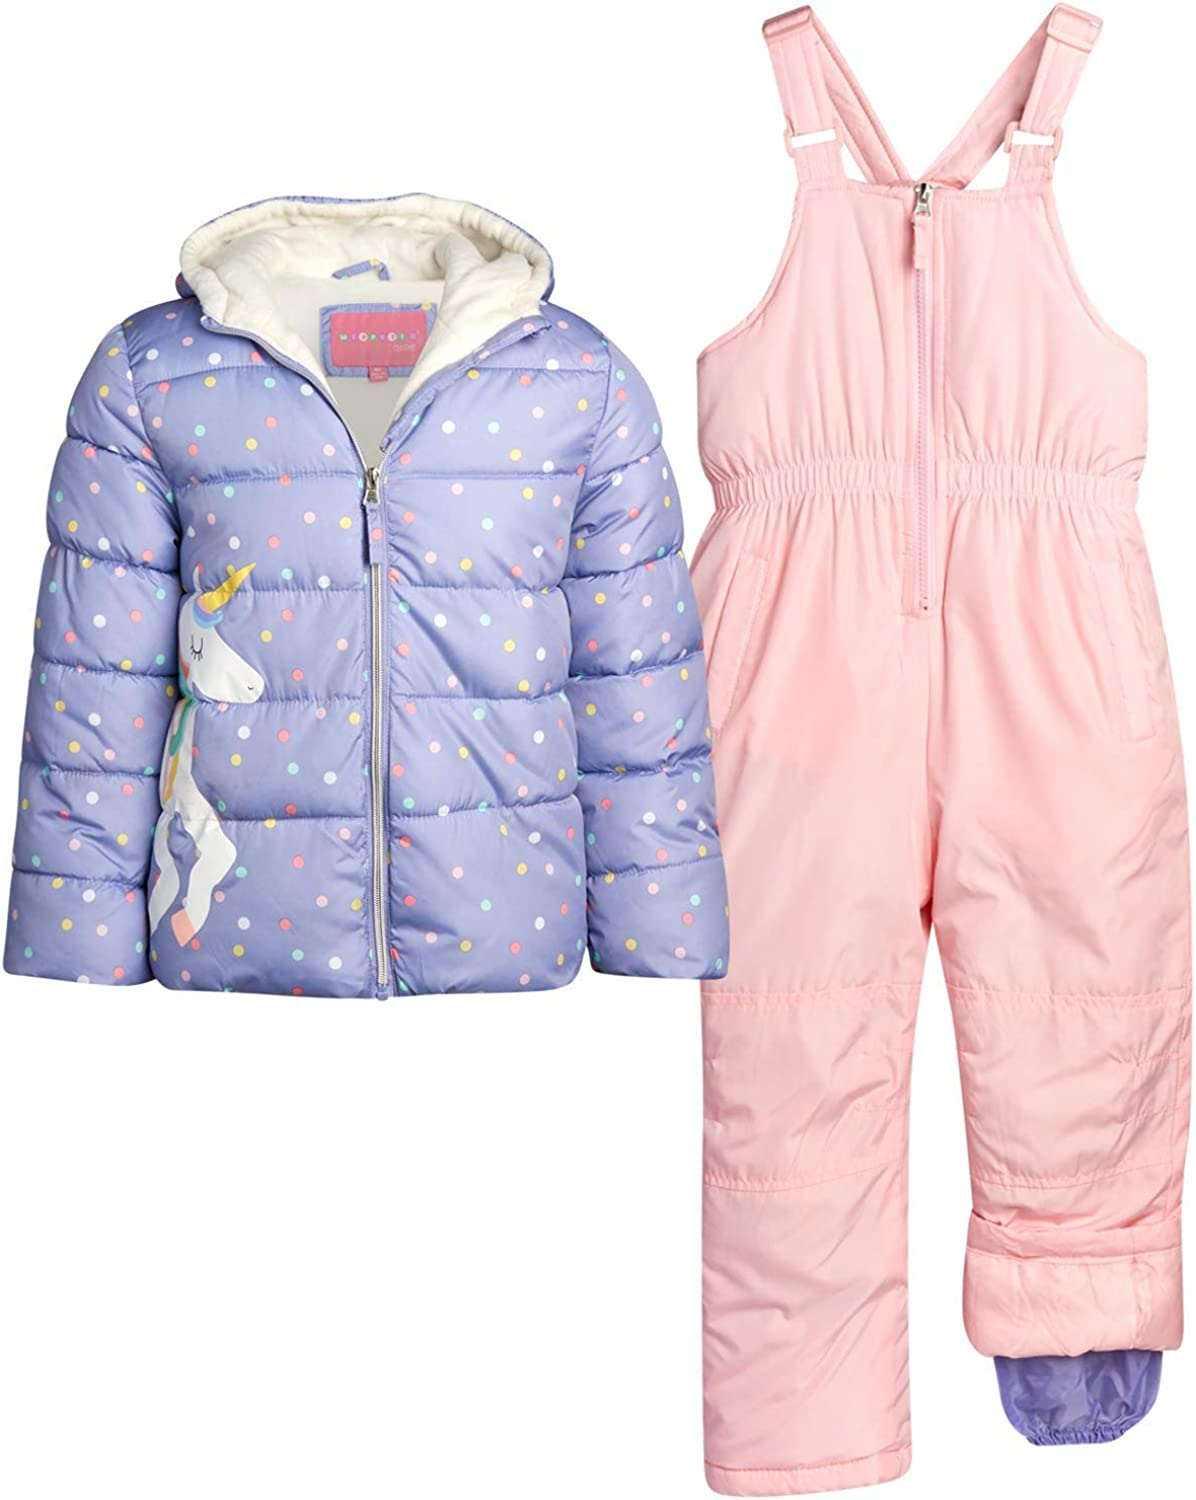 Wippette Girls Heavyweight Insulated Ski Jacket and Snow Bib Snowsuit Set Infant//Toddler//Little Girls